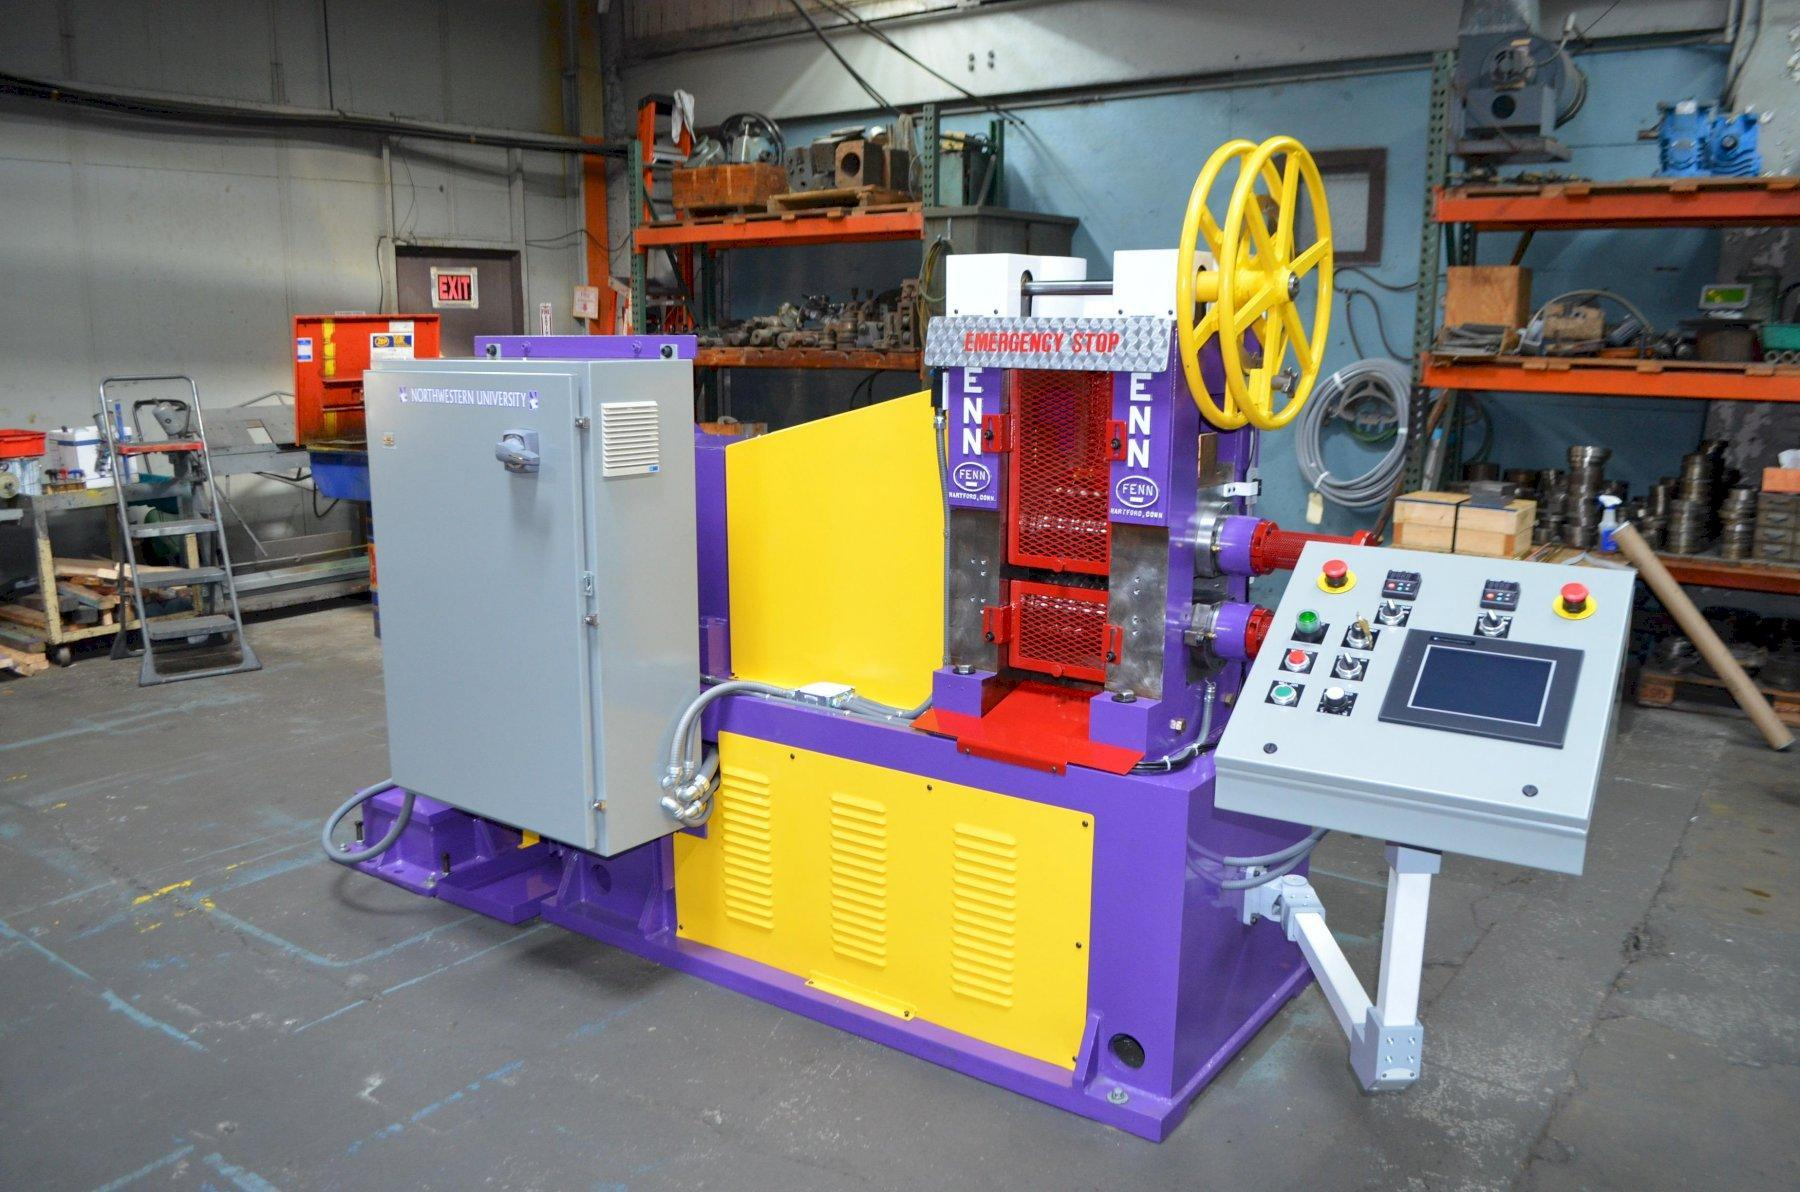 """FENN MODEL 051 5"""" X 8"""" 2HI/4HI HOT LAB ROLLING MILL - INCLUDES PRE-HEATED ROLLS, LOAD CELLS, AND DATA ACQUISITION SYSTEM"""